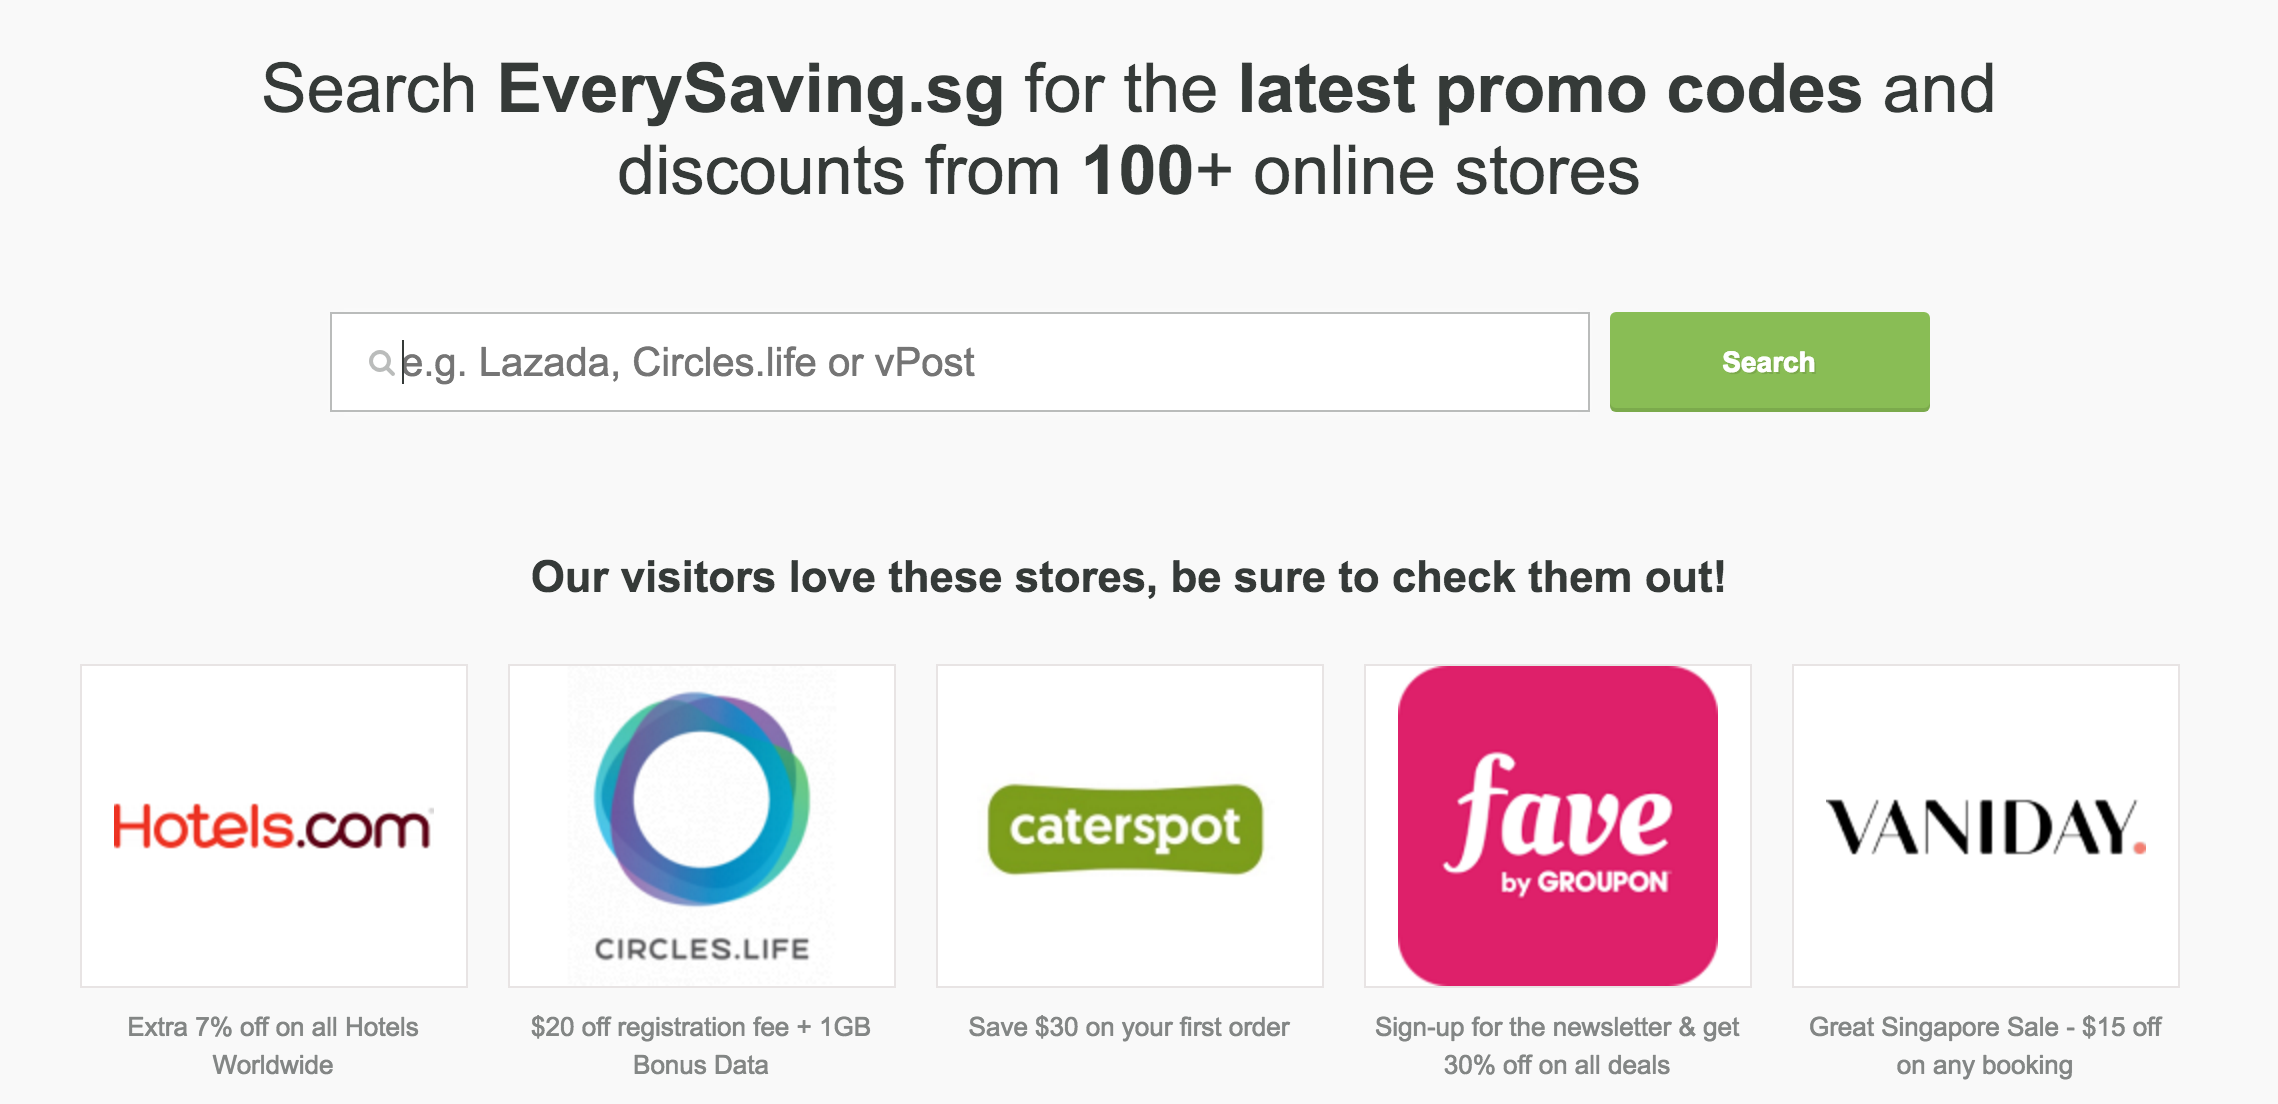 everydaysavings.sg